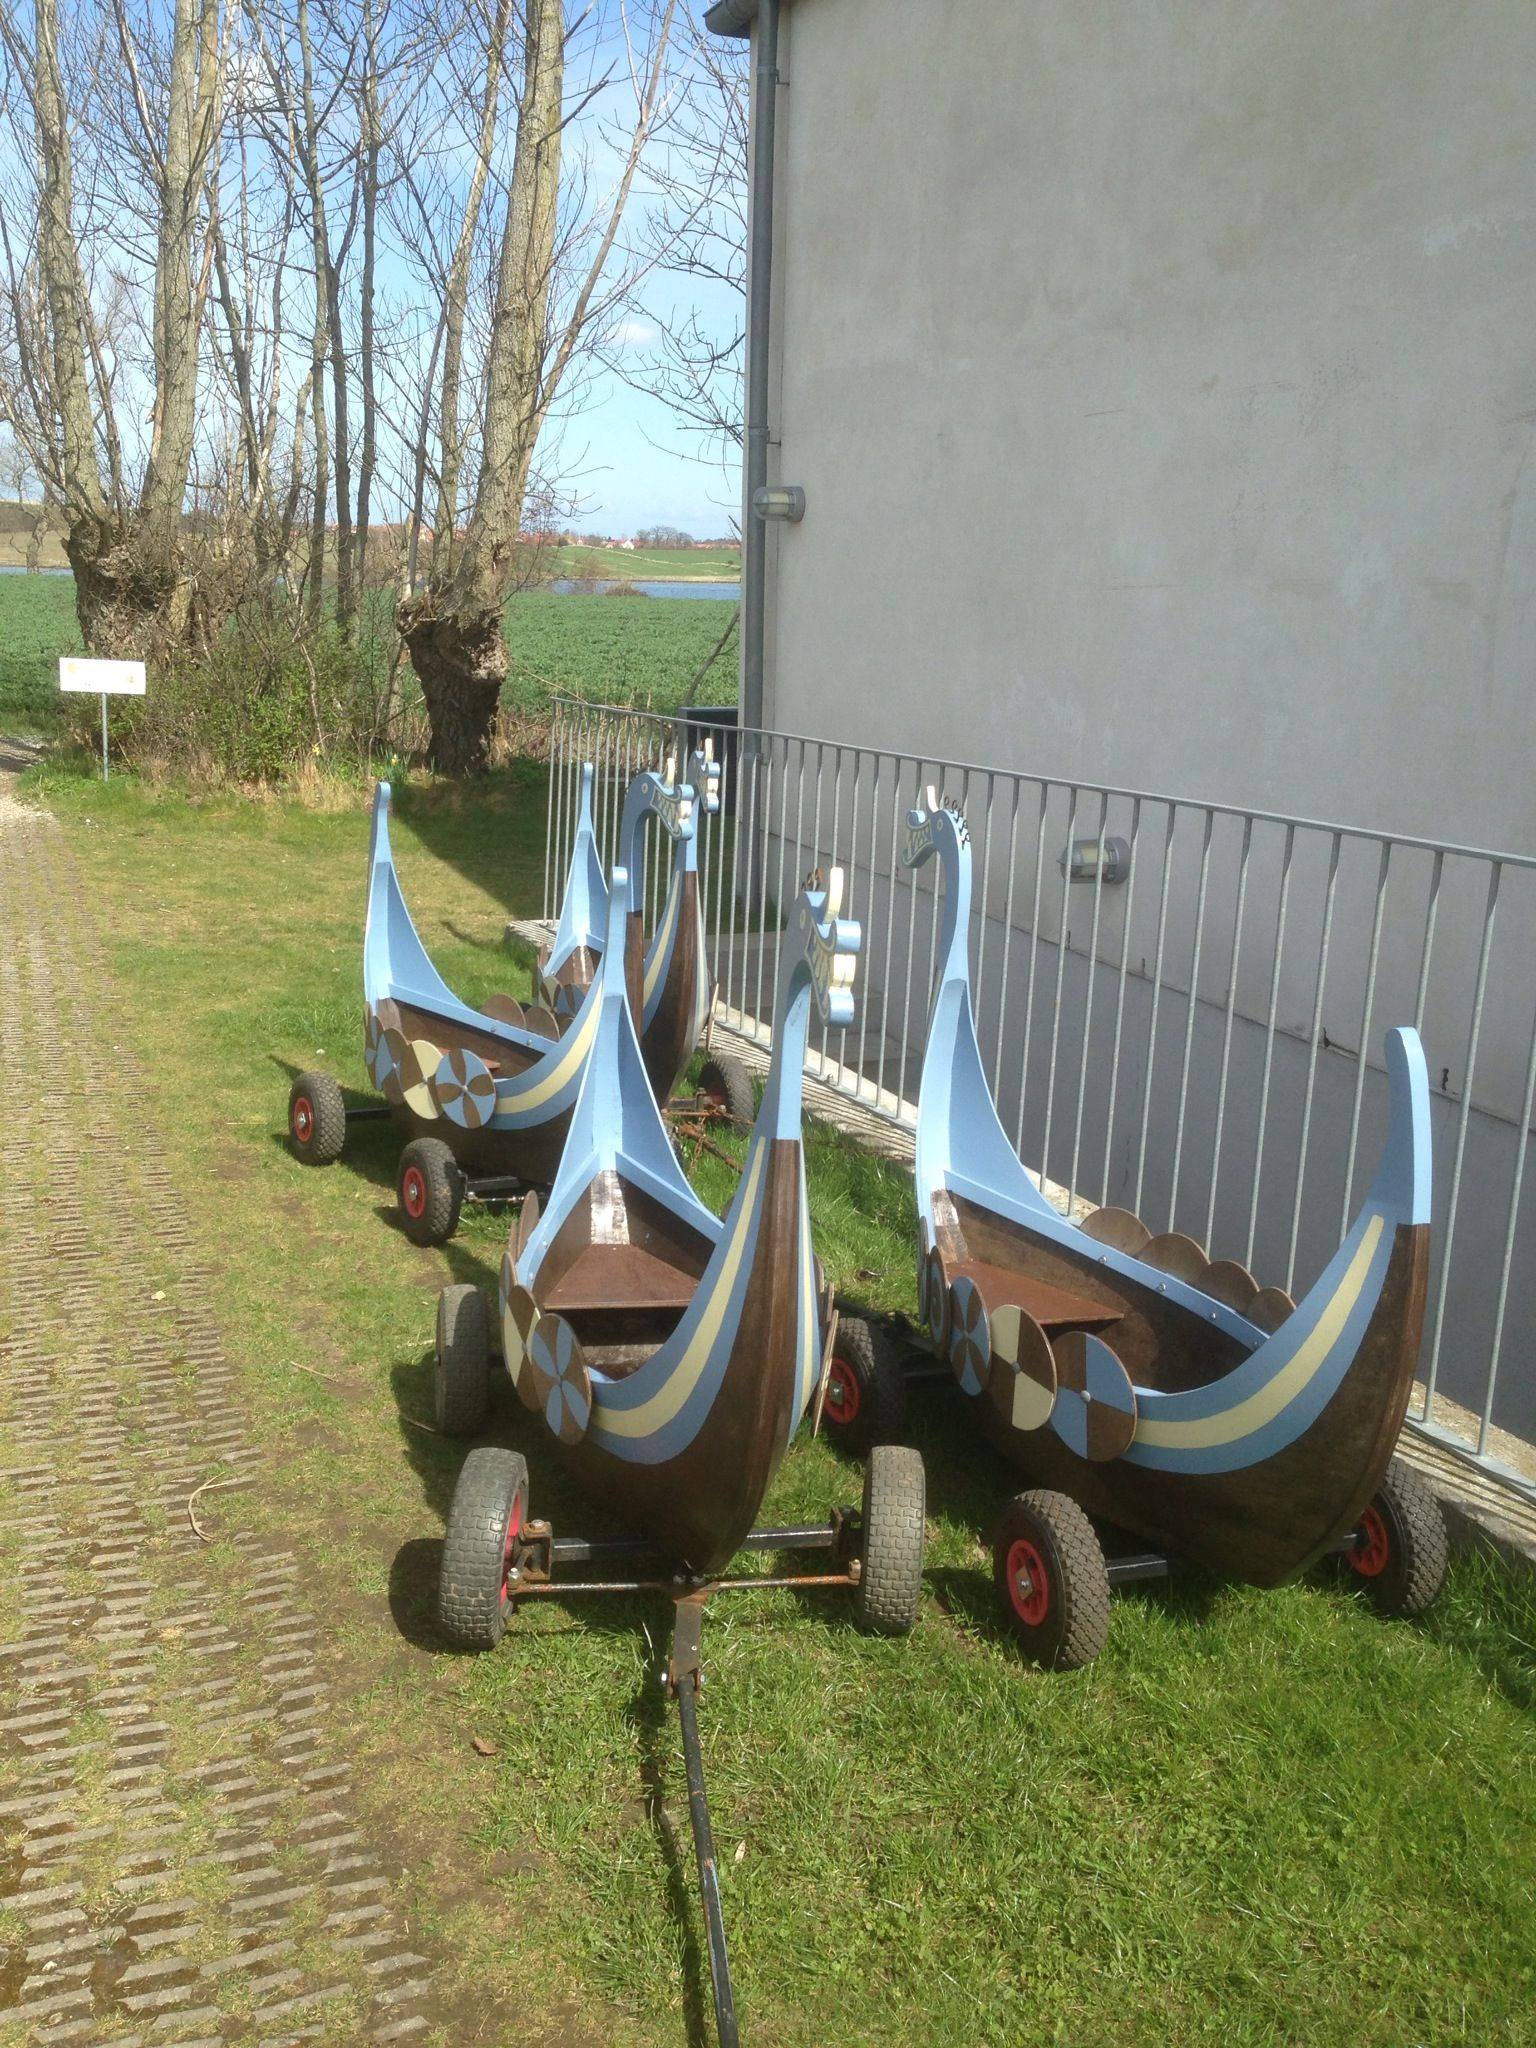 Which historical people made sea voyages in boats named longships?